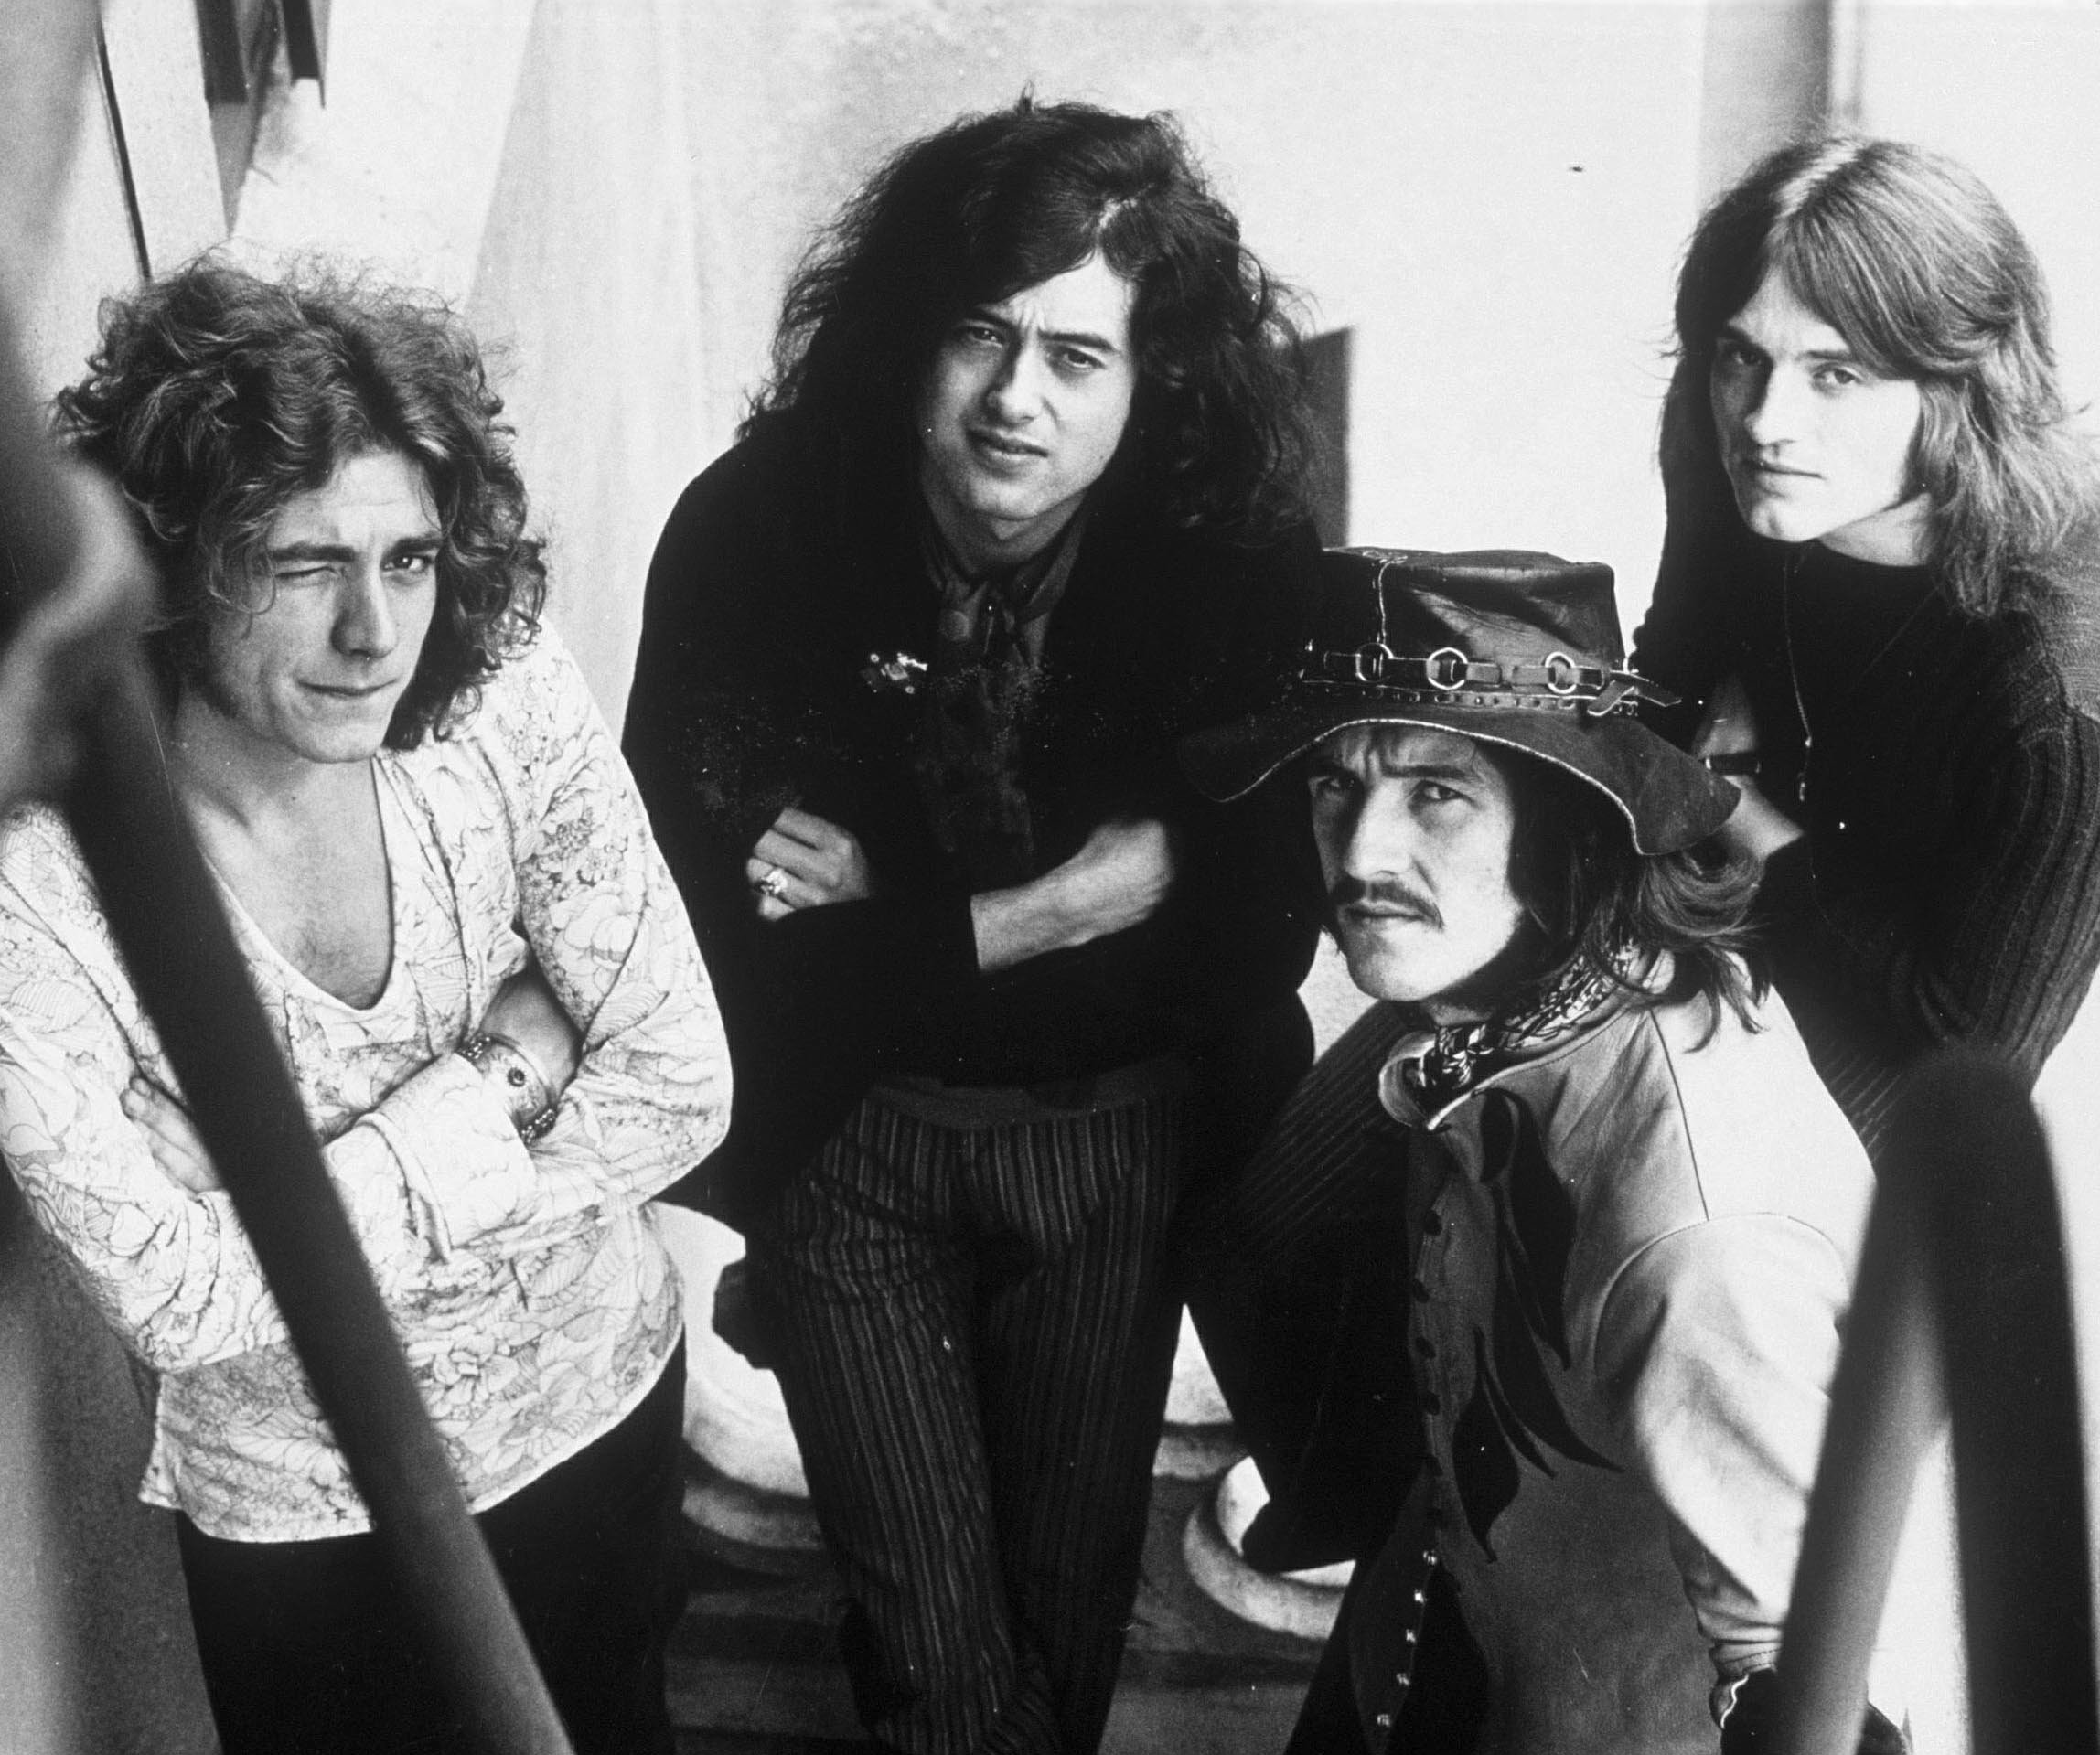 led zeppelin documentary to feature surviving band members rolling stone. Black Bedroom Furniture Sets. Home Design Ideas